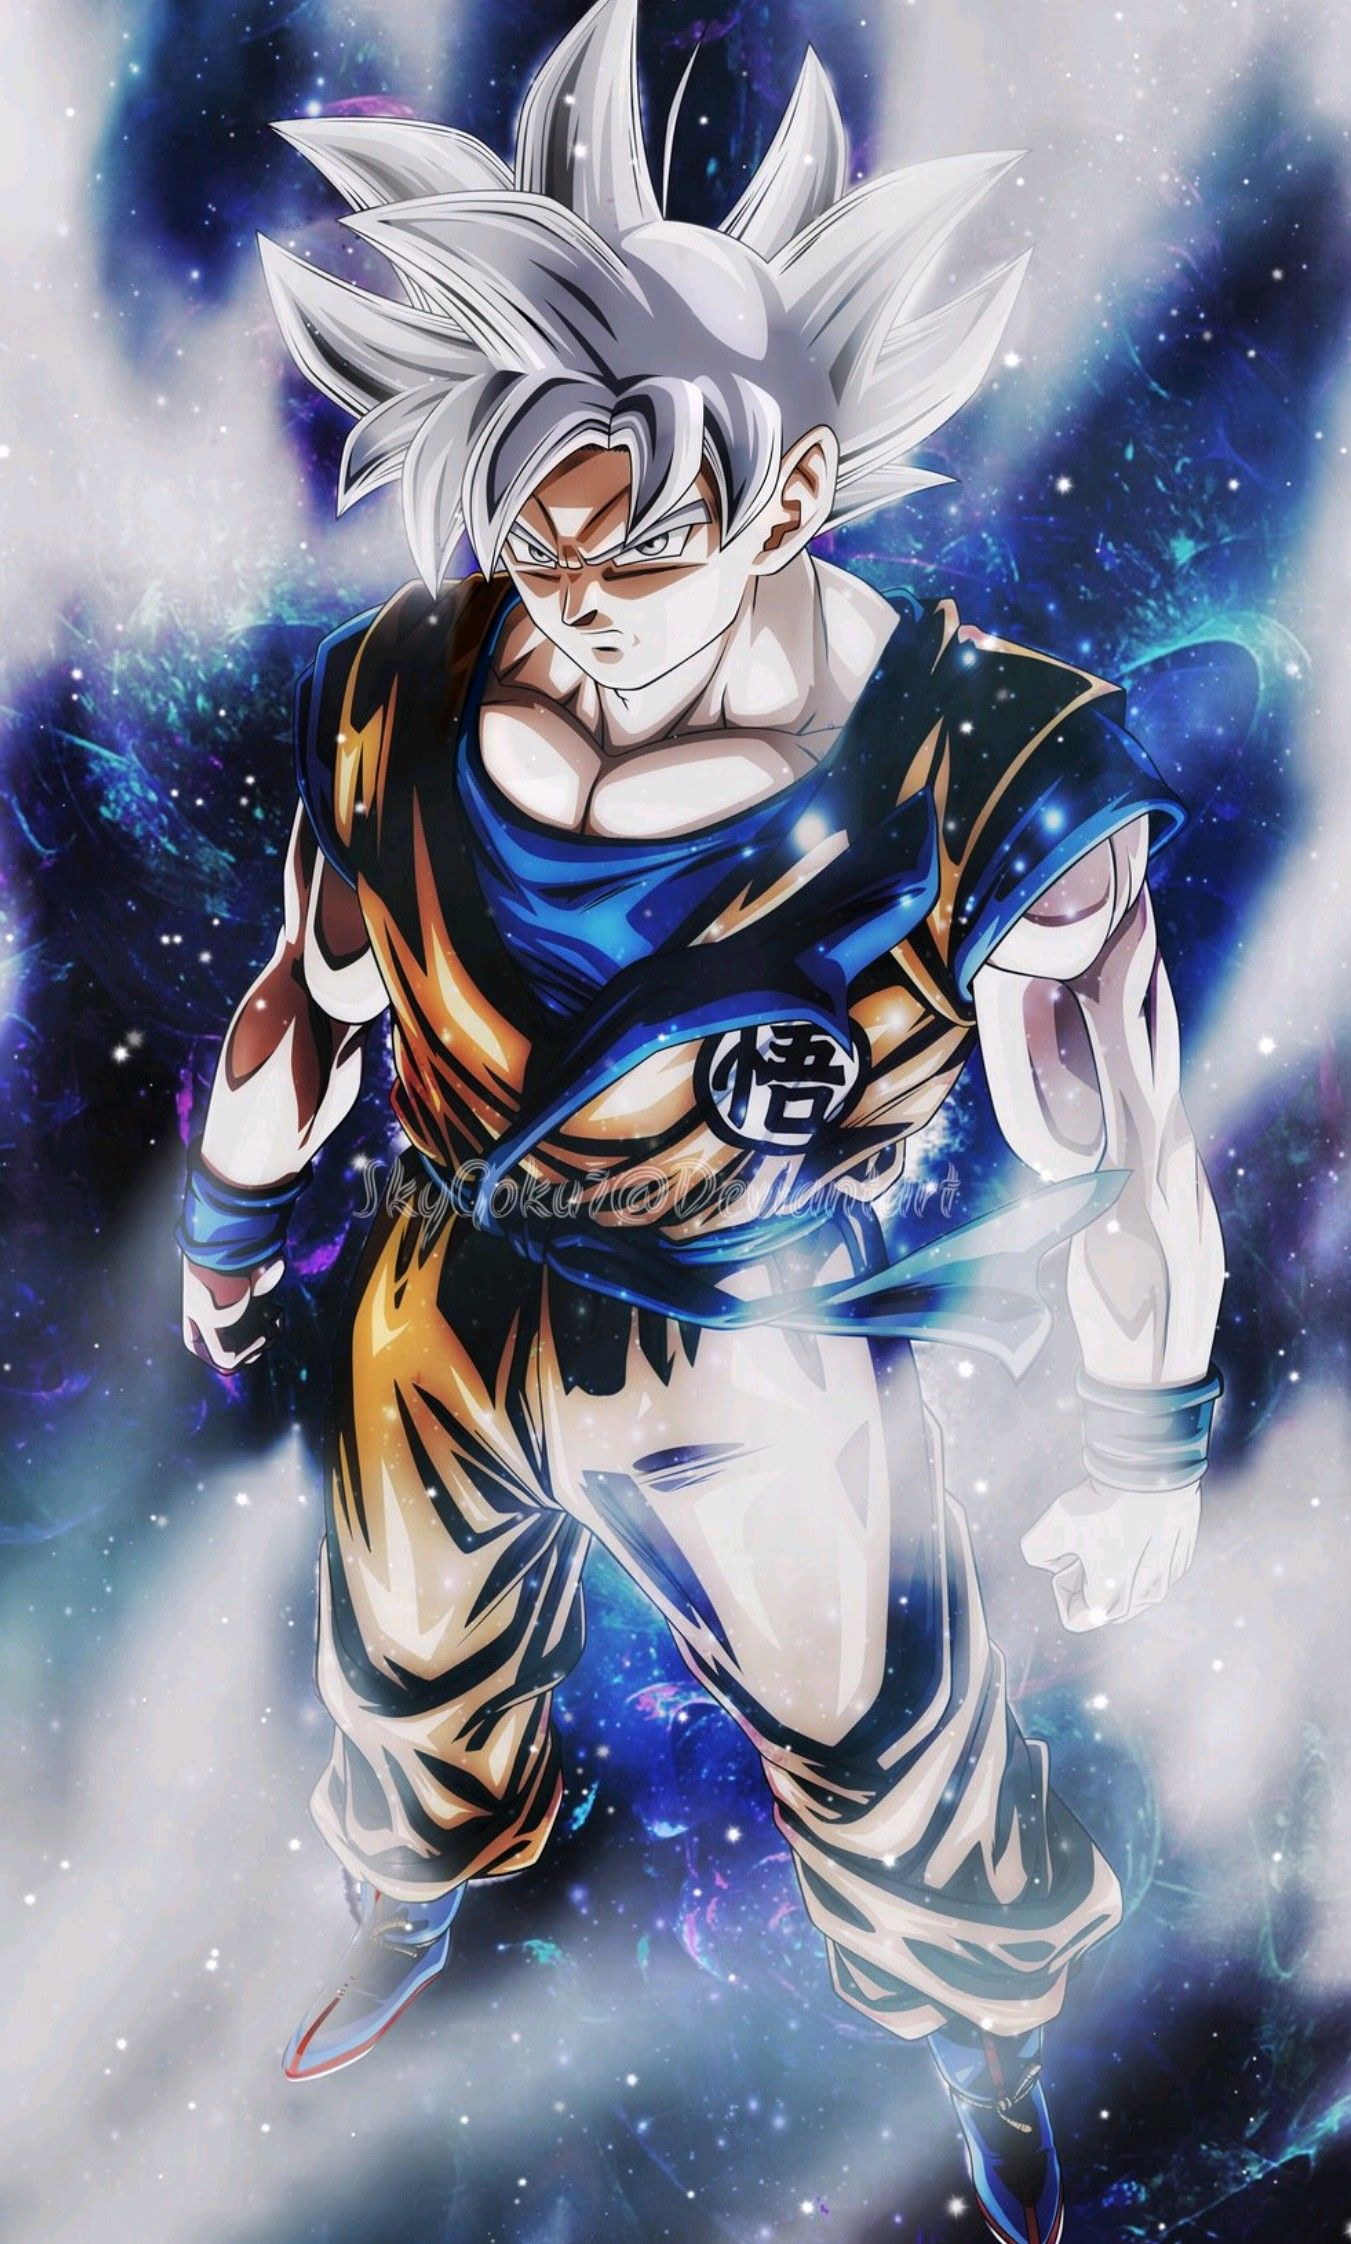 Goku Ultra Instinct - Mastered, Dragon Ball Super | Anime ...